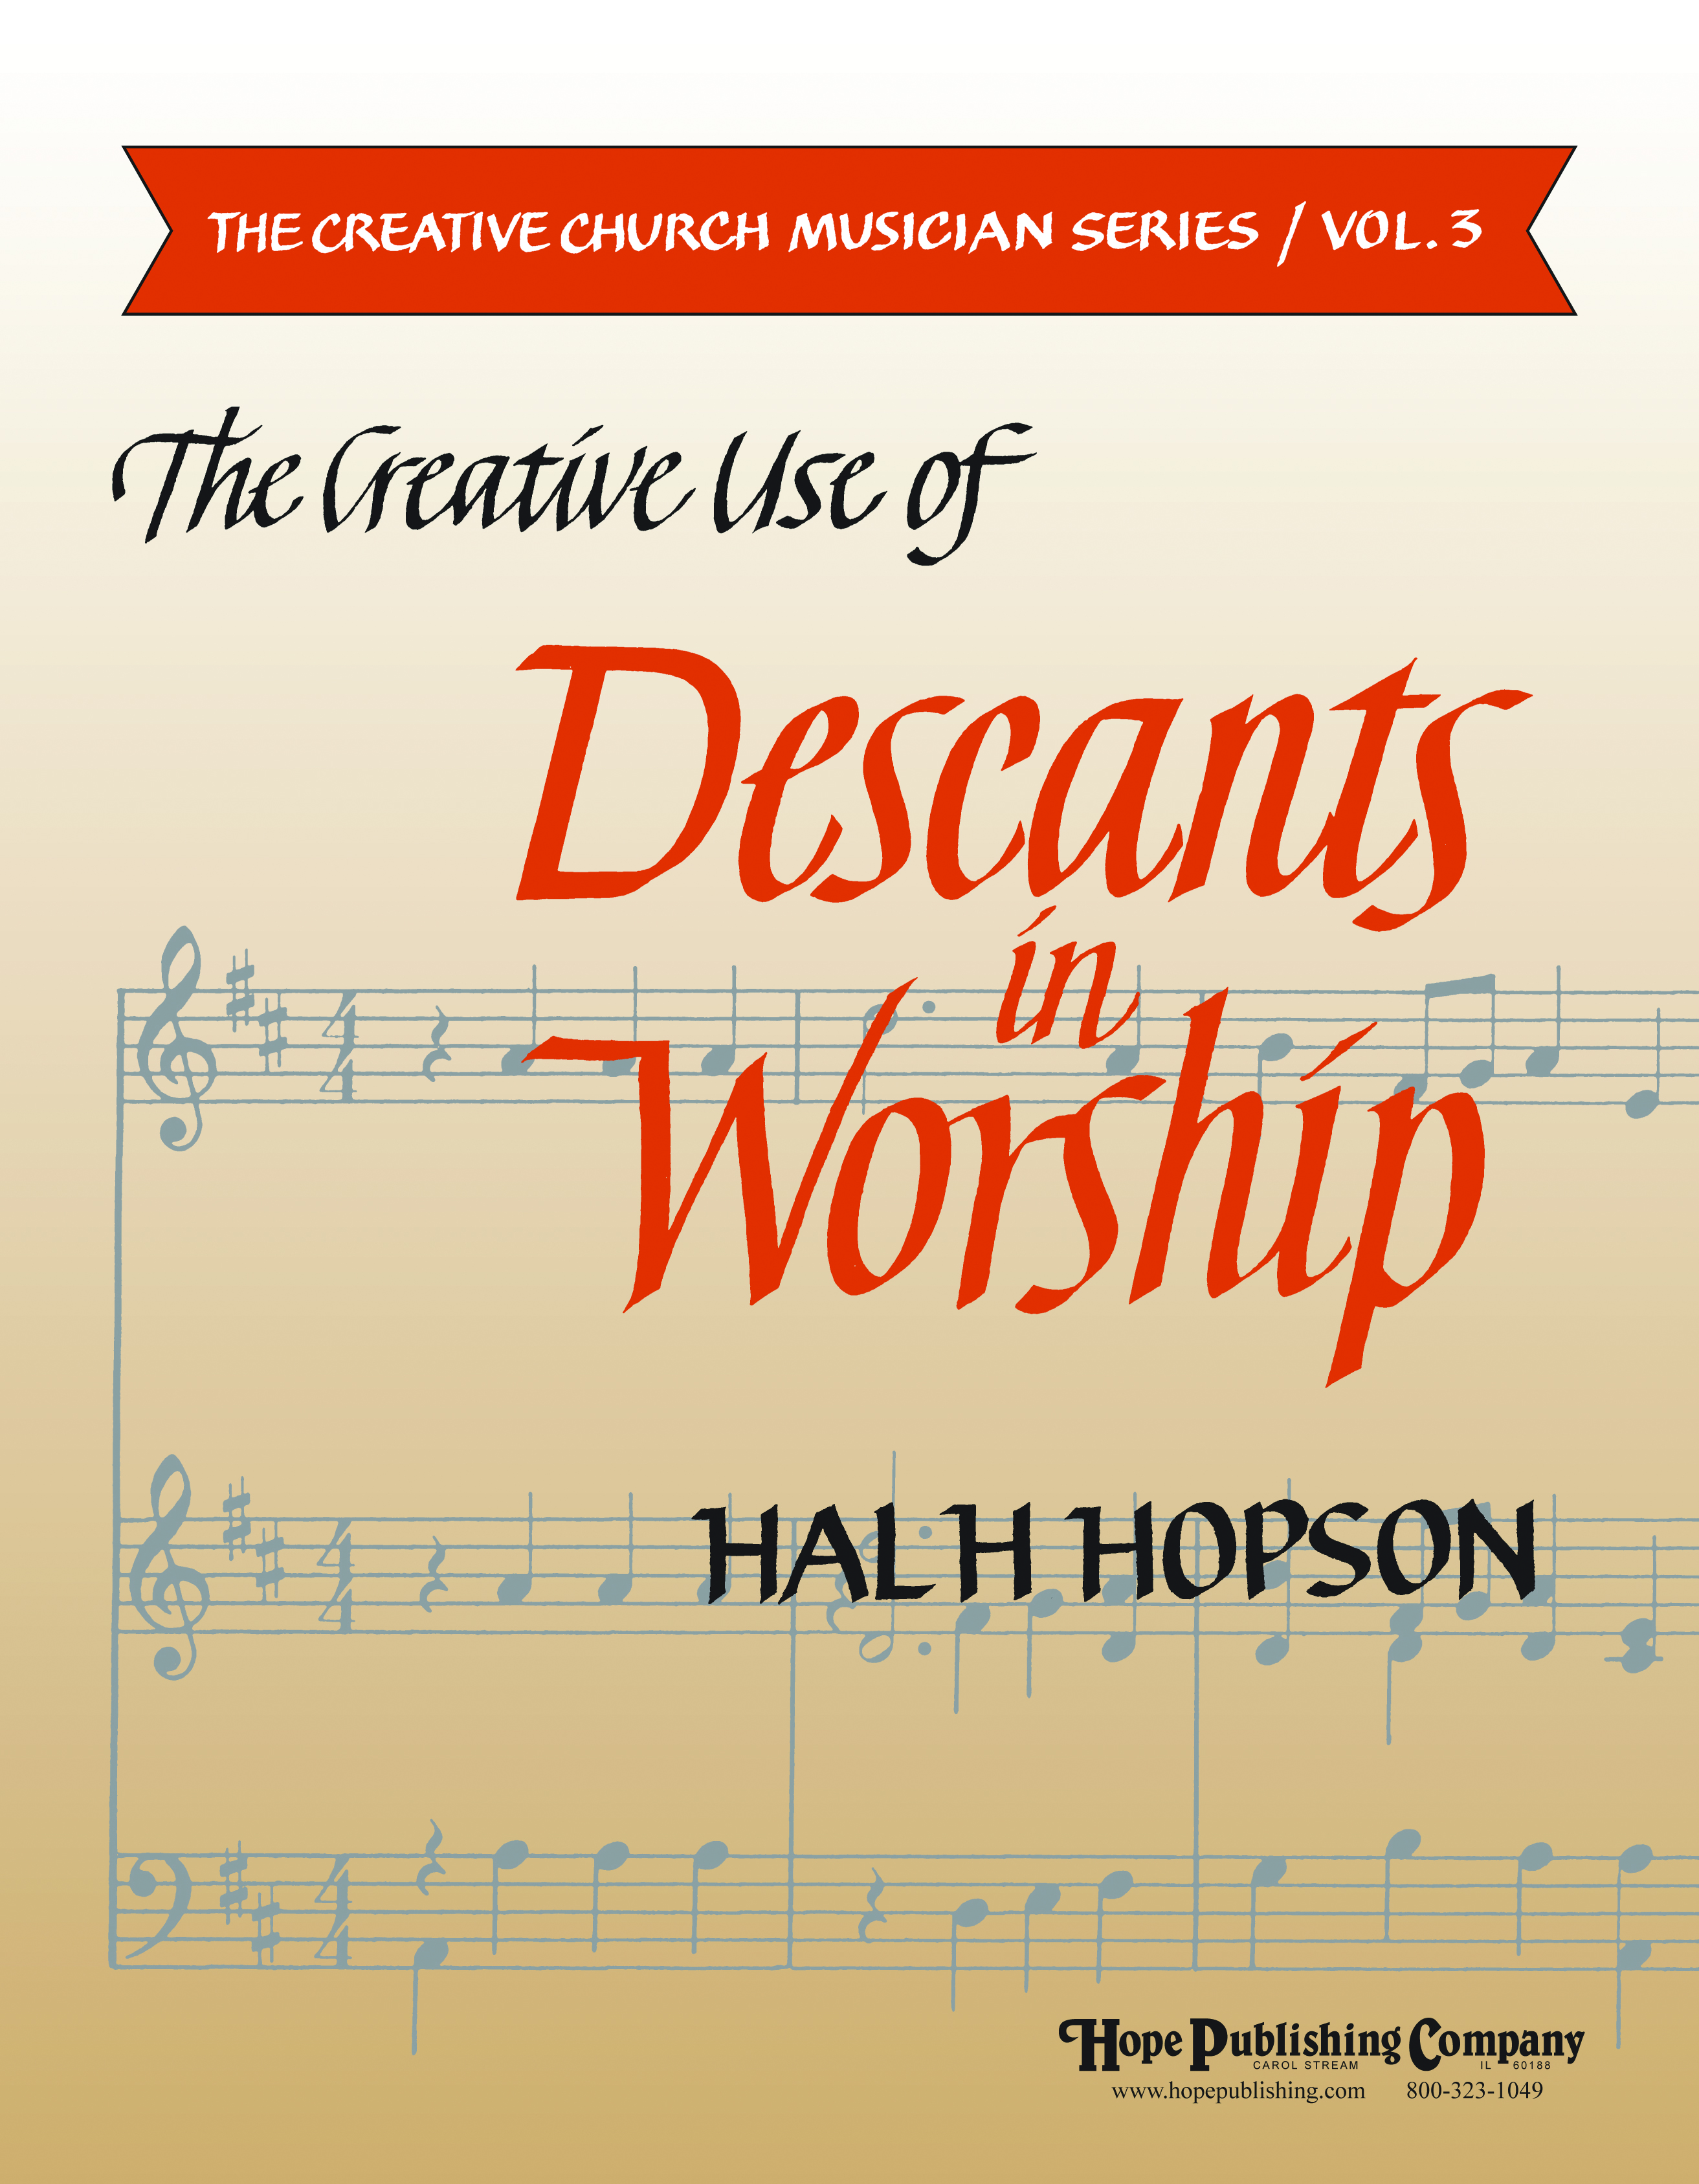 Creative Use of Descants in Worship The (Vol. 3) Cover Image